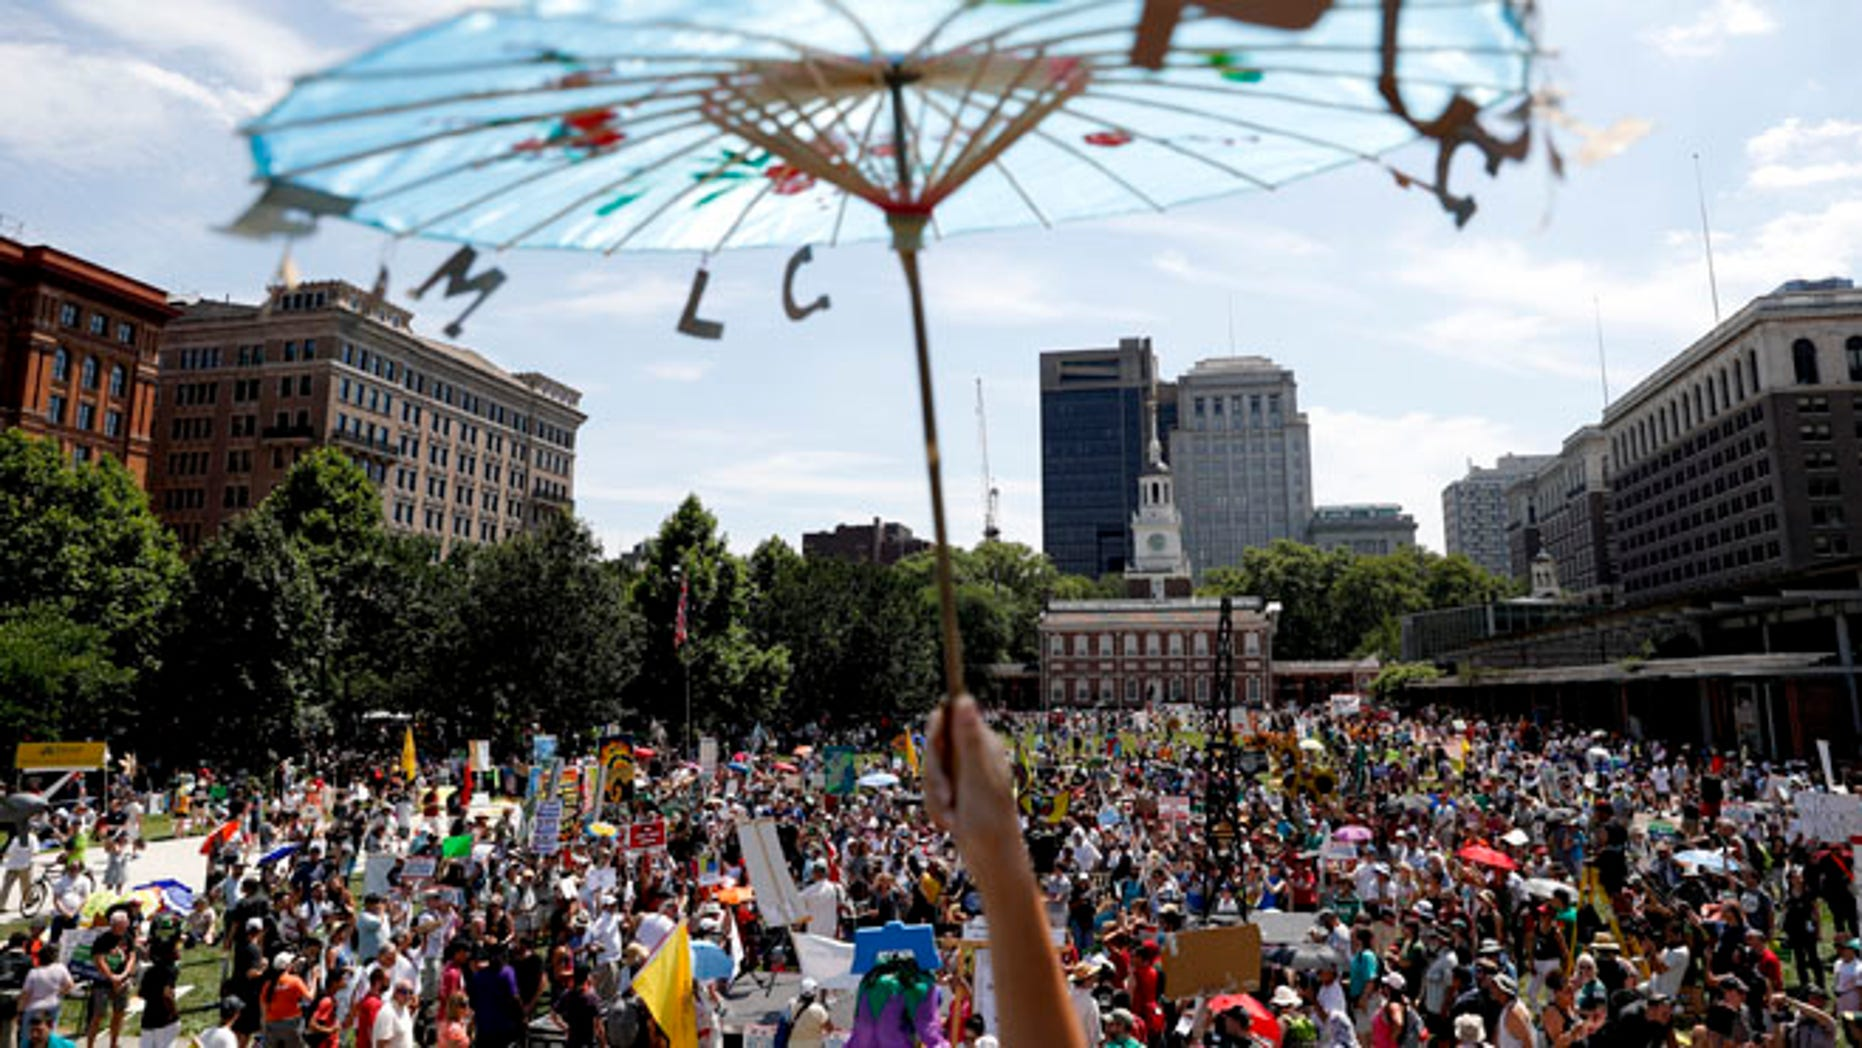 Protesters gather during a demonstration at Liberty Square on Sunday, July 24, 2016, in Philadelphia.